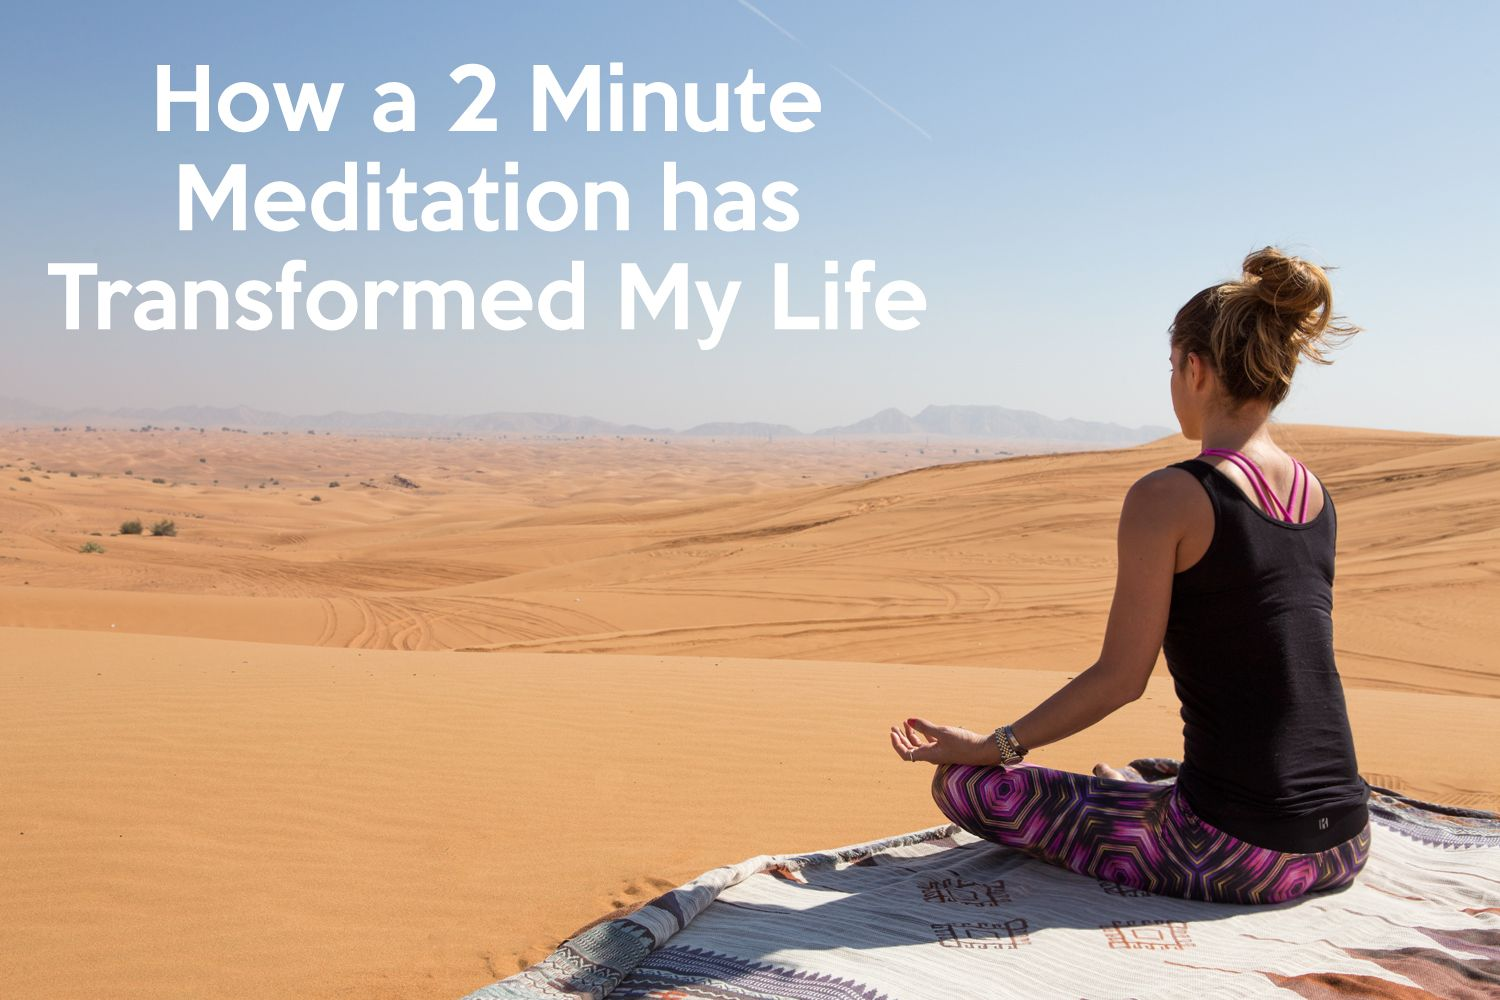 How a 2 Minute Meditation has Transformed My Life